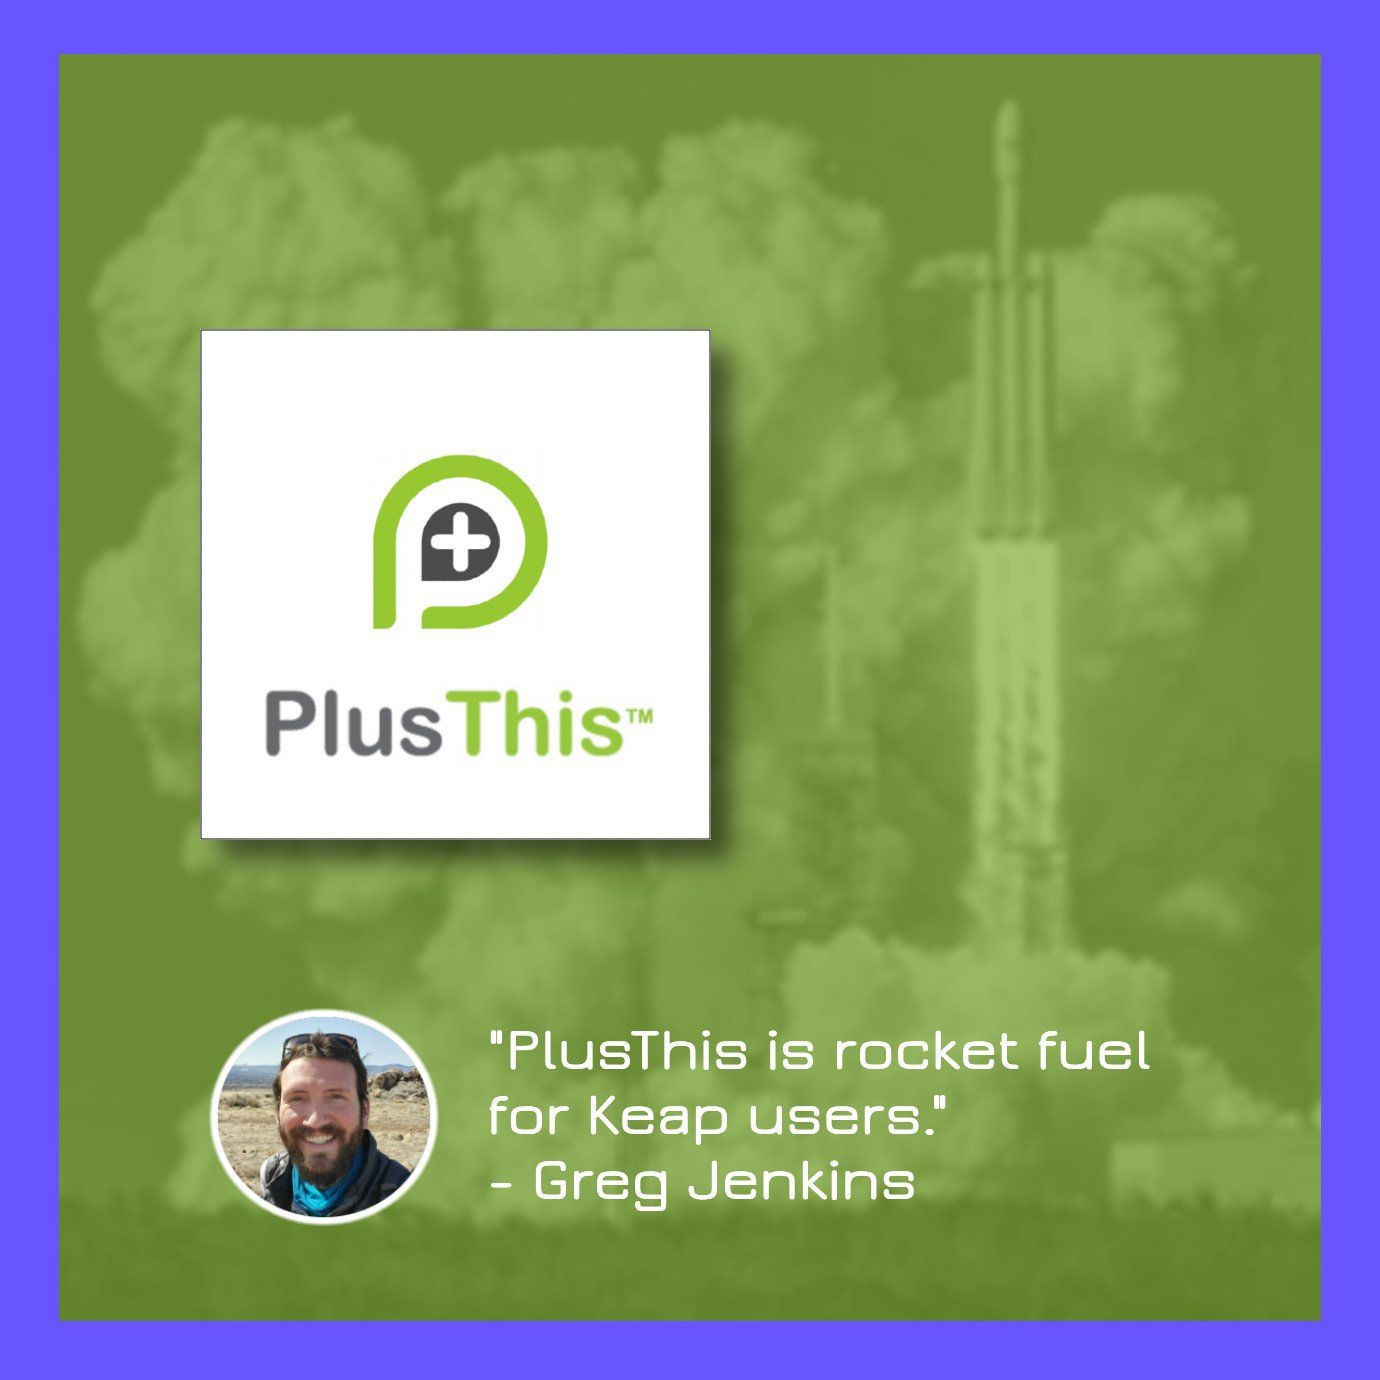 plusthis is great